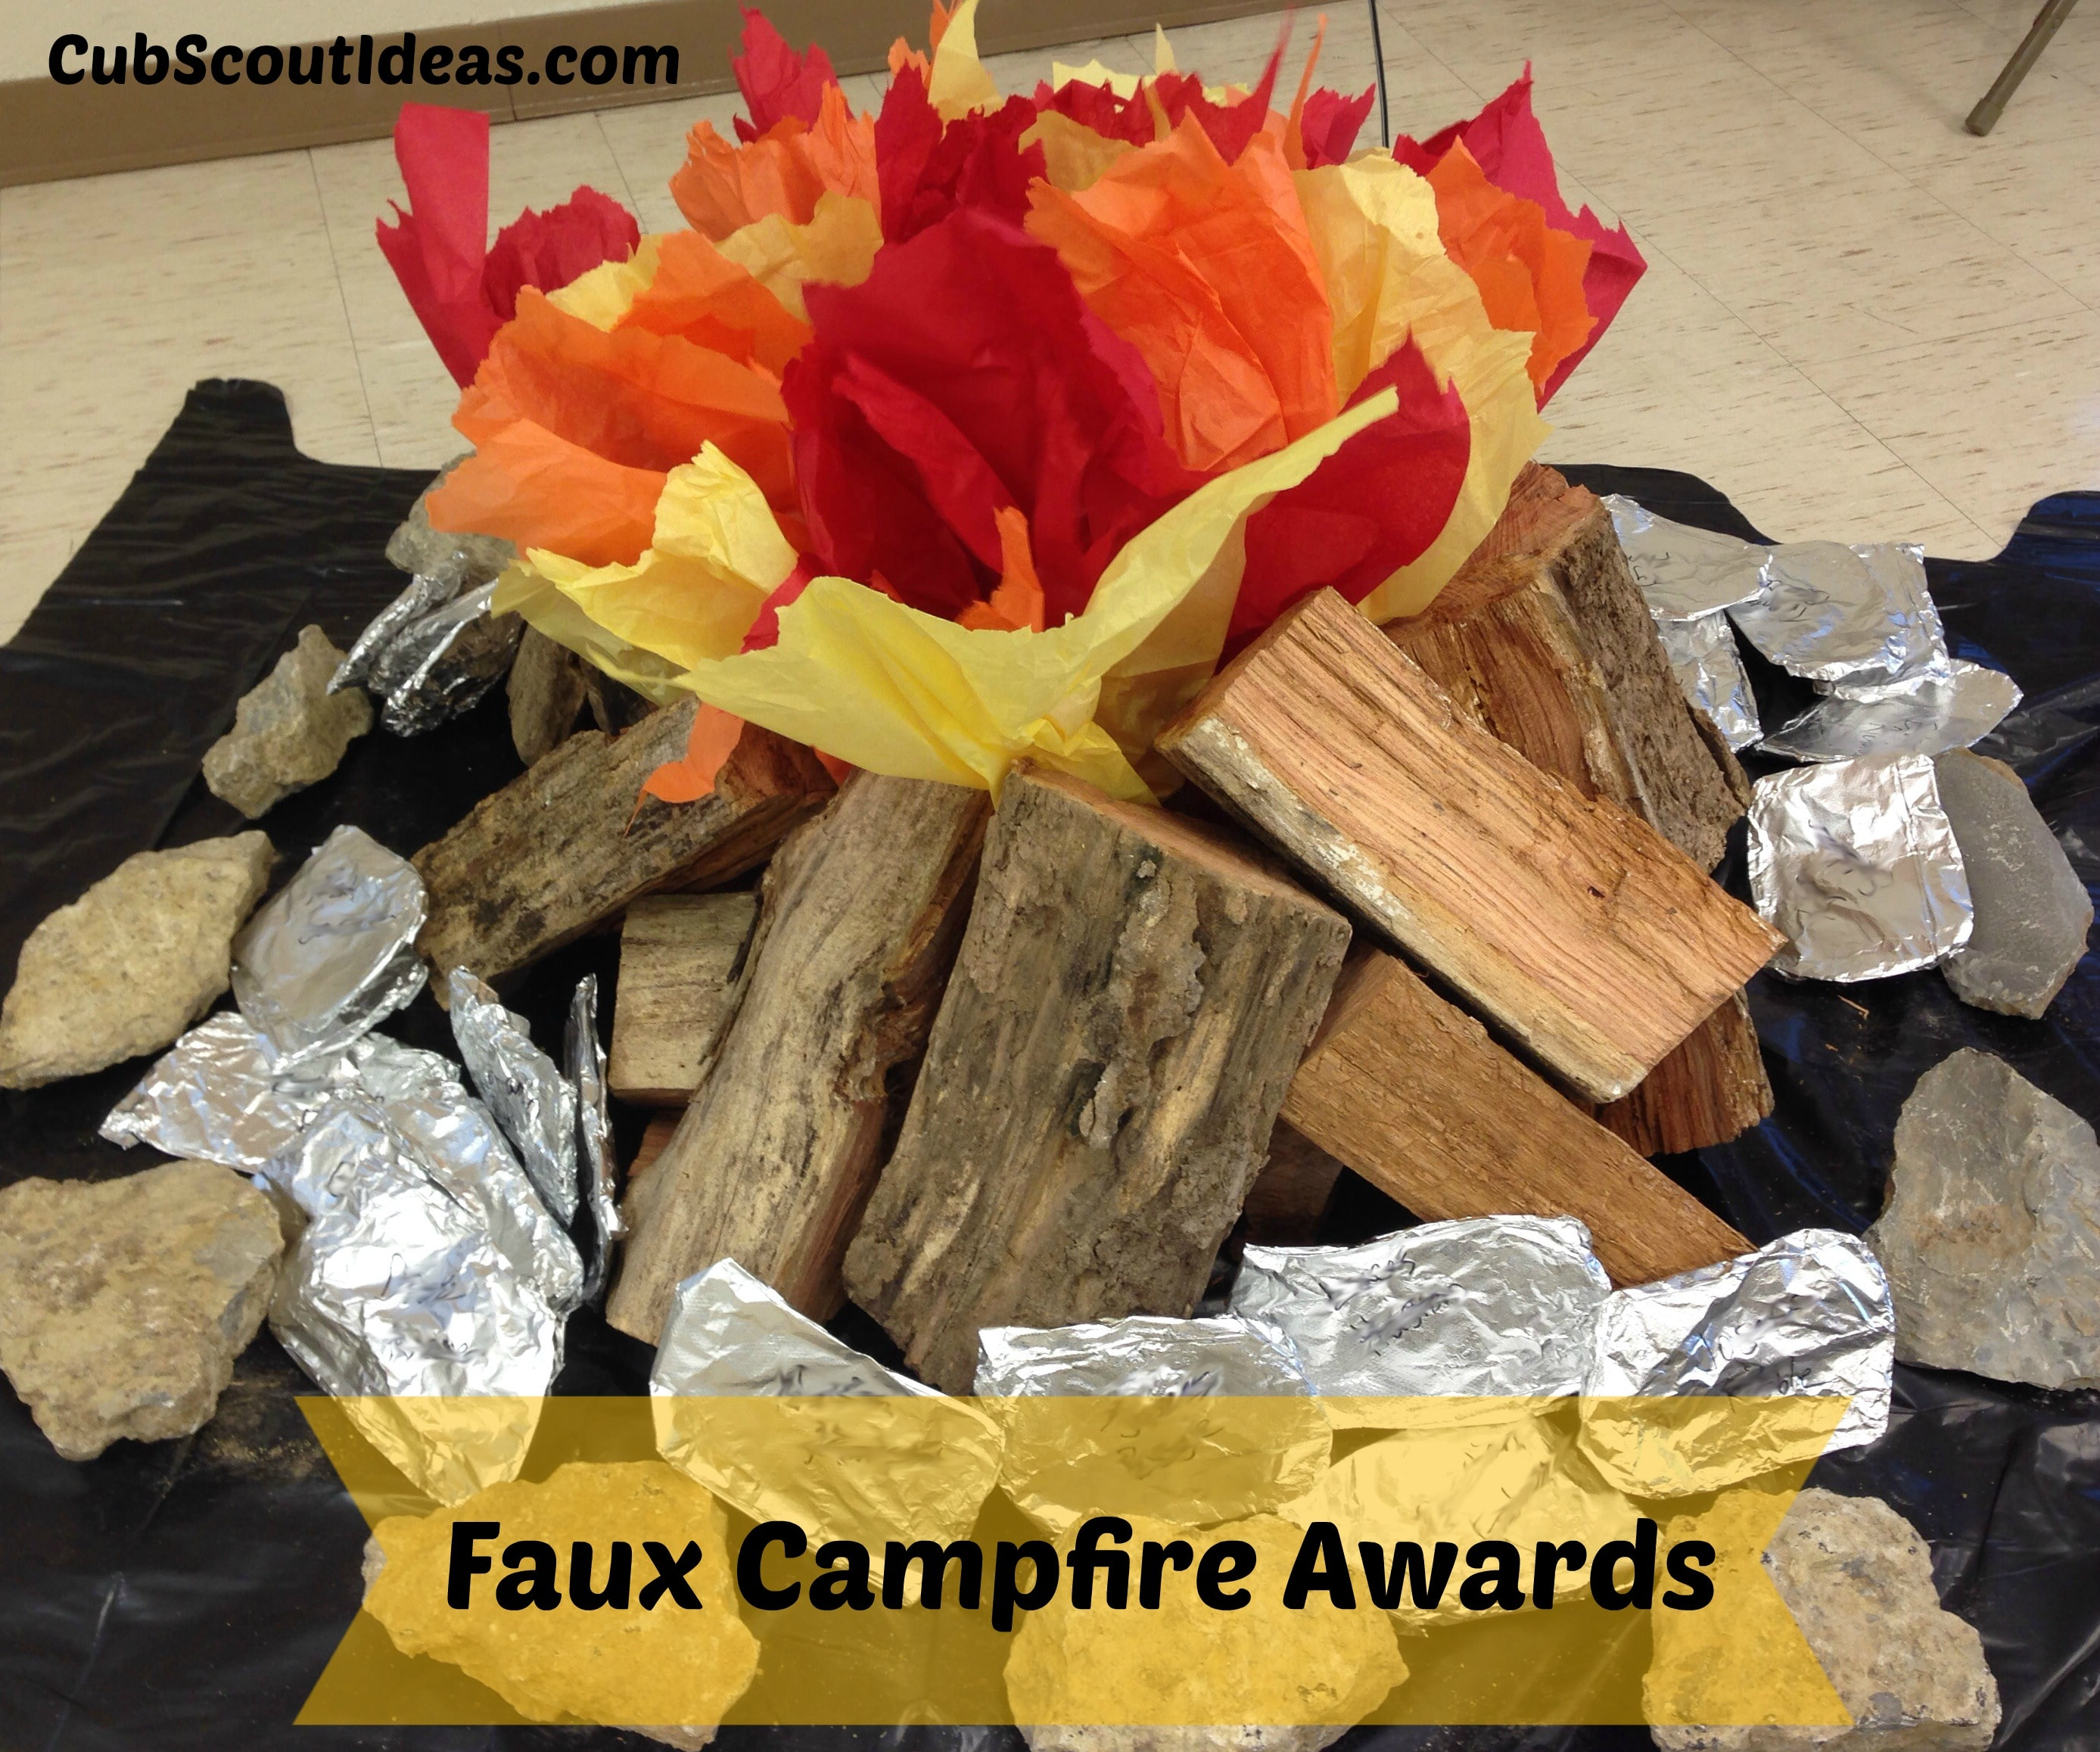 Faux Campfire Awards Ceremony